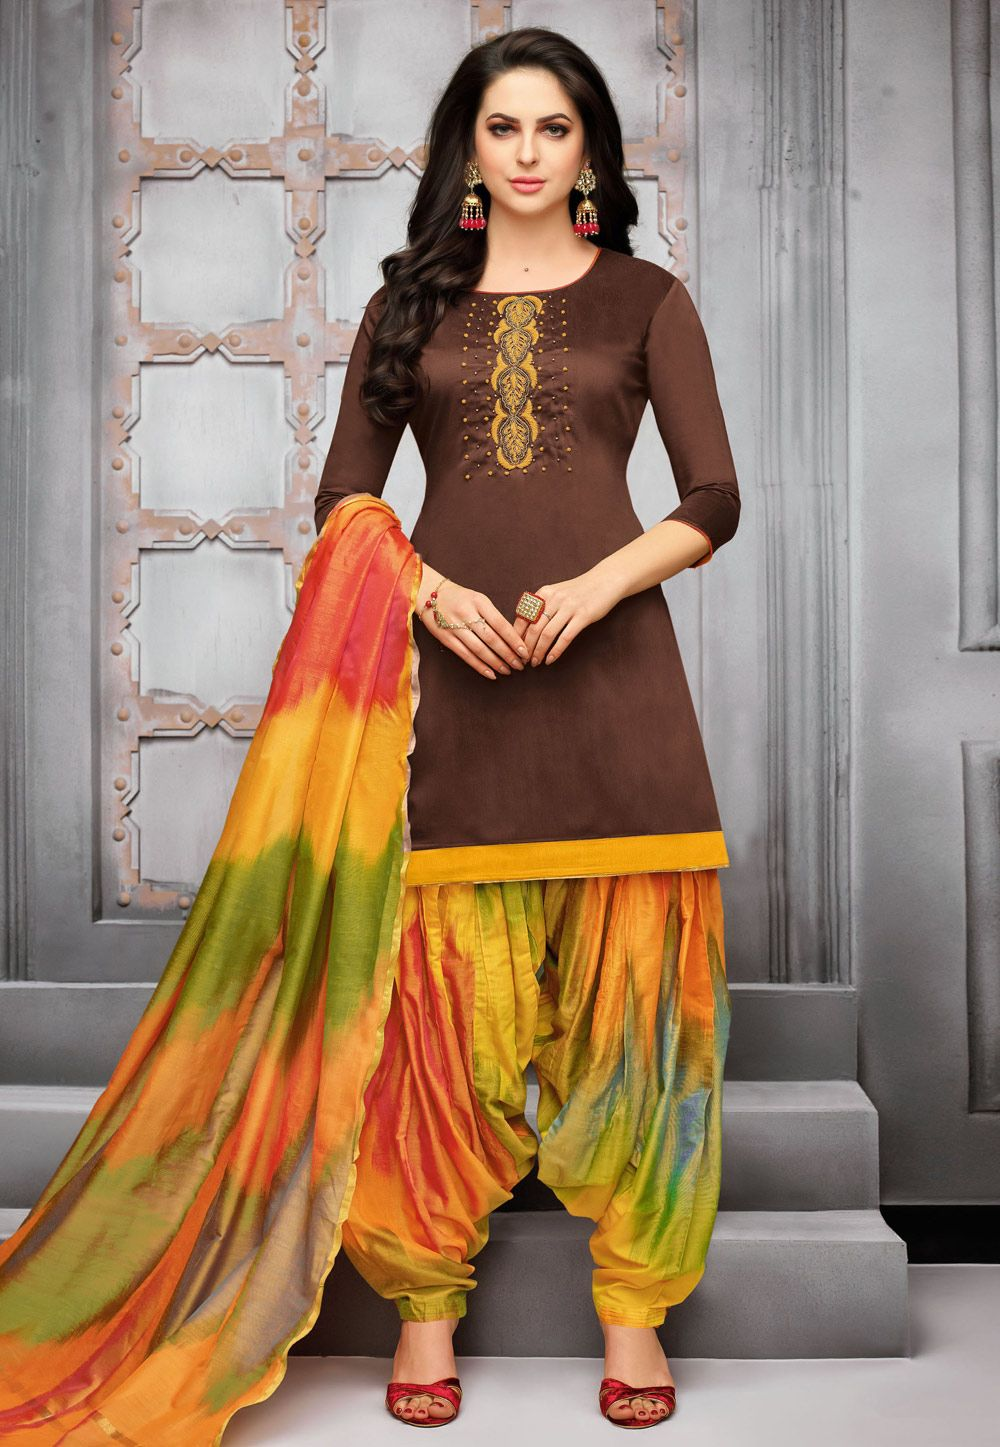 3cc76a2f20 Buy Brown Silk Patiala Suit 156487 online at lowest price from huge  collection of salwar kameez at Indianclothstore.com.